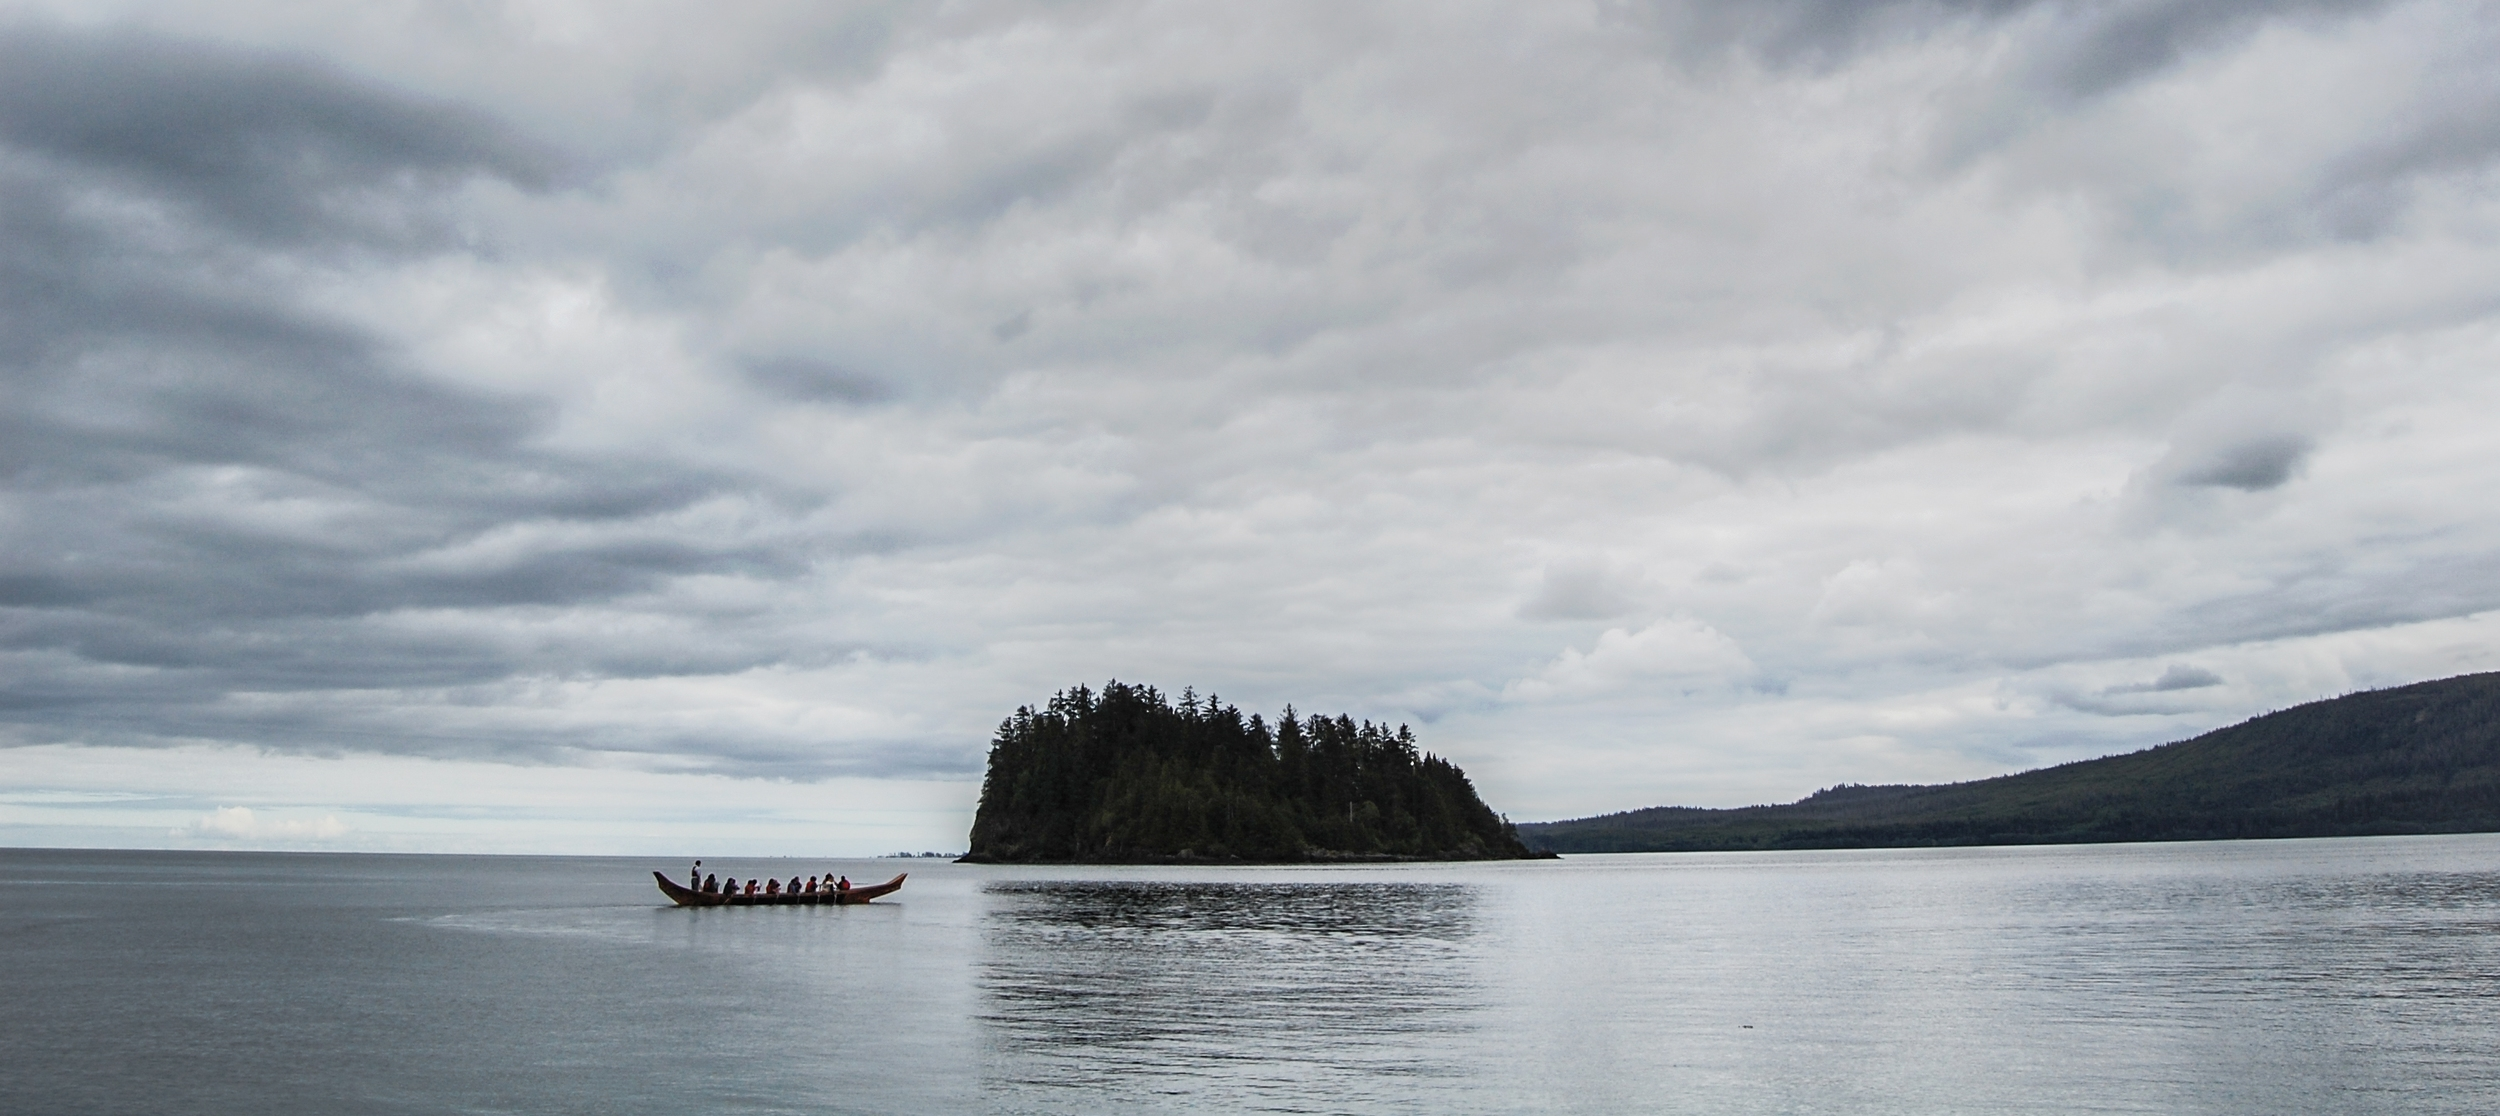 Why not go for a paddle in a traditional Haida canoe?